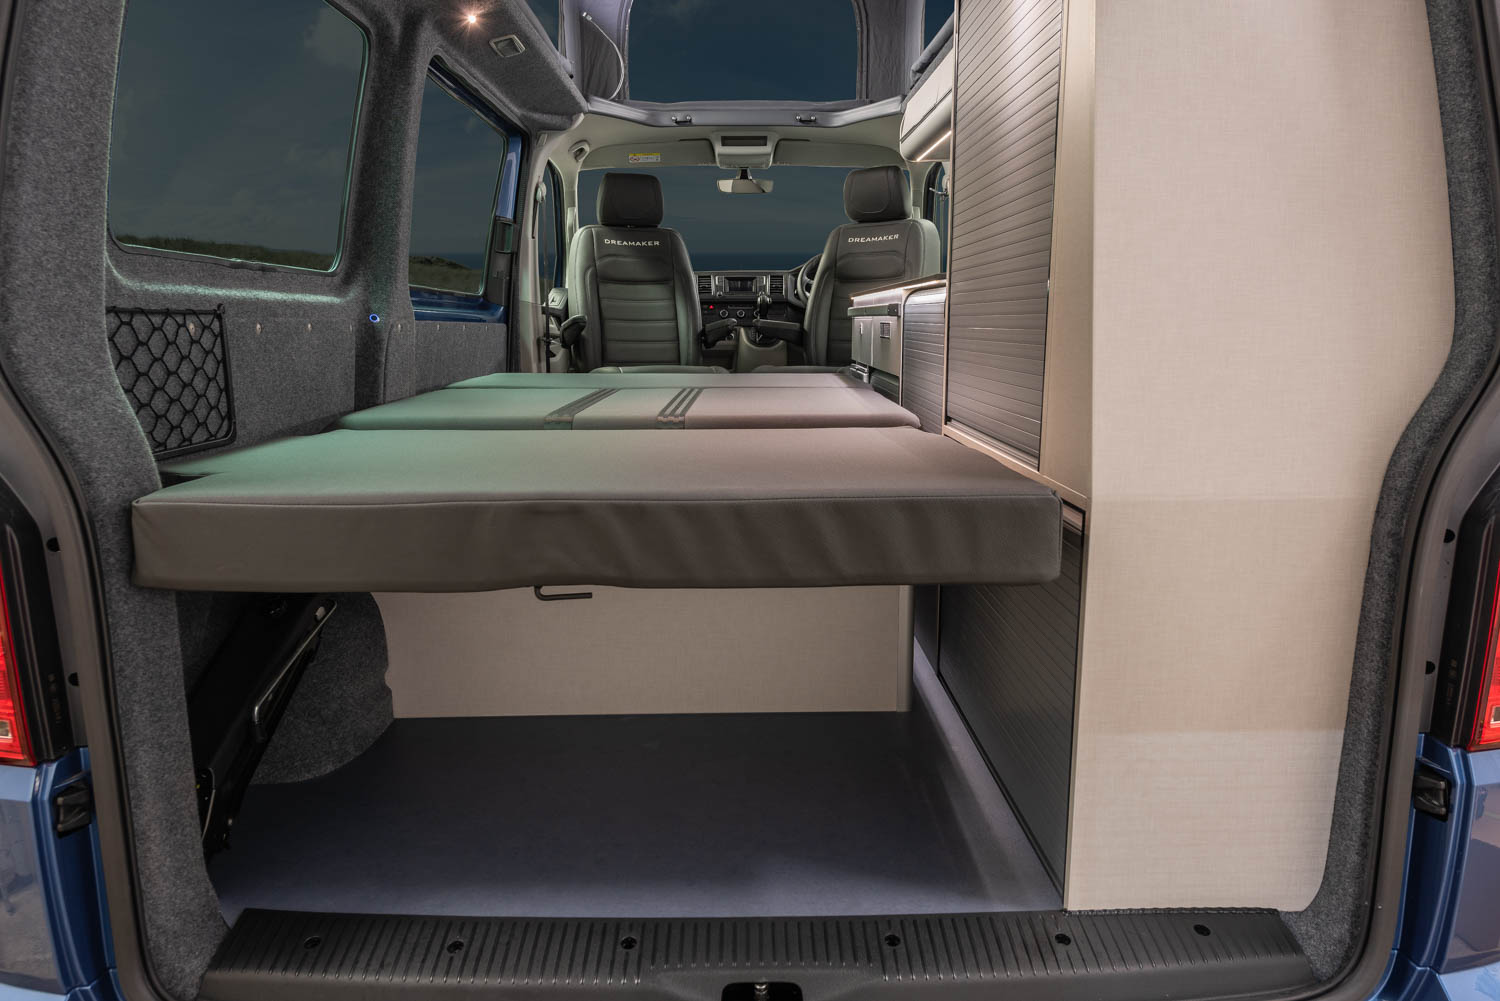 Side view of the table and seating arrangement inside the Dreamaker VW Camper conversion